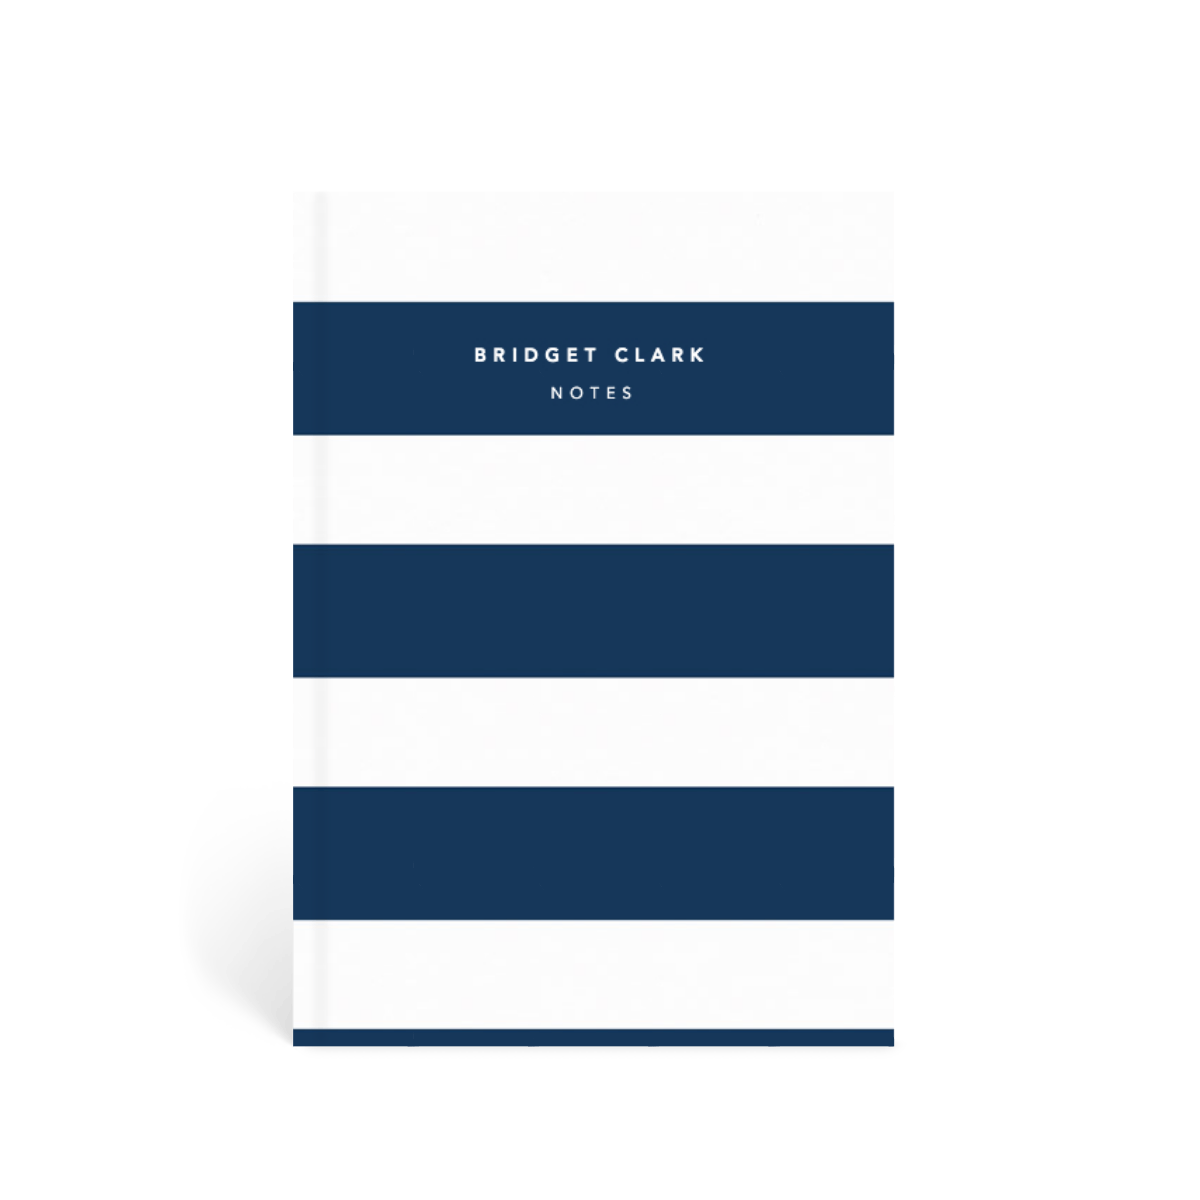 Https%3a%2f%2fwww.papier.com%2fproduct image%2f54887%2f25%2fnavy stripe 13192 front 1542298966.png?ixlib=rb 1.1